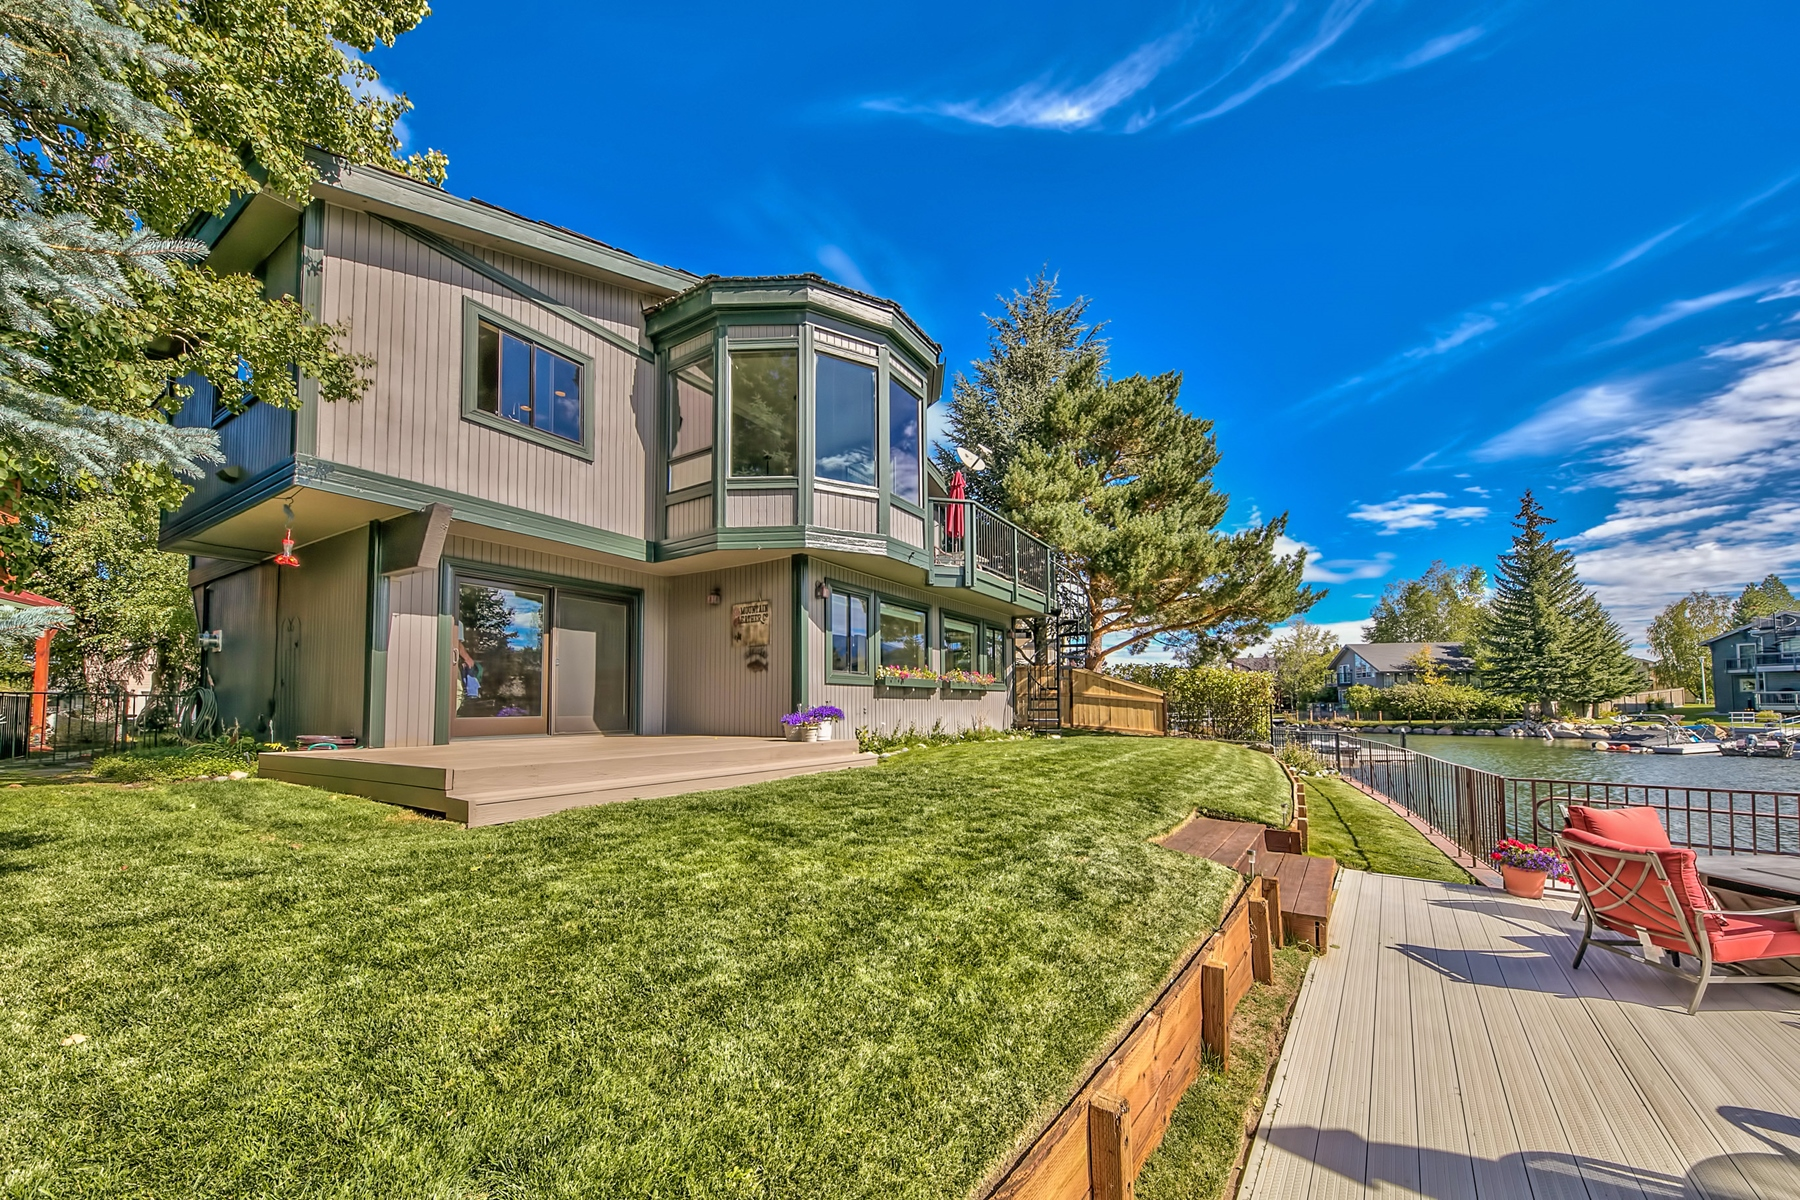 Single Family Home for Active at 2080 Slalom Court, South lake Tahoe, CA, 96150 2080 Slalom Court South Lake Tahoe, California 96150 United States